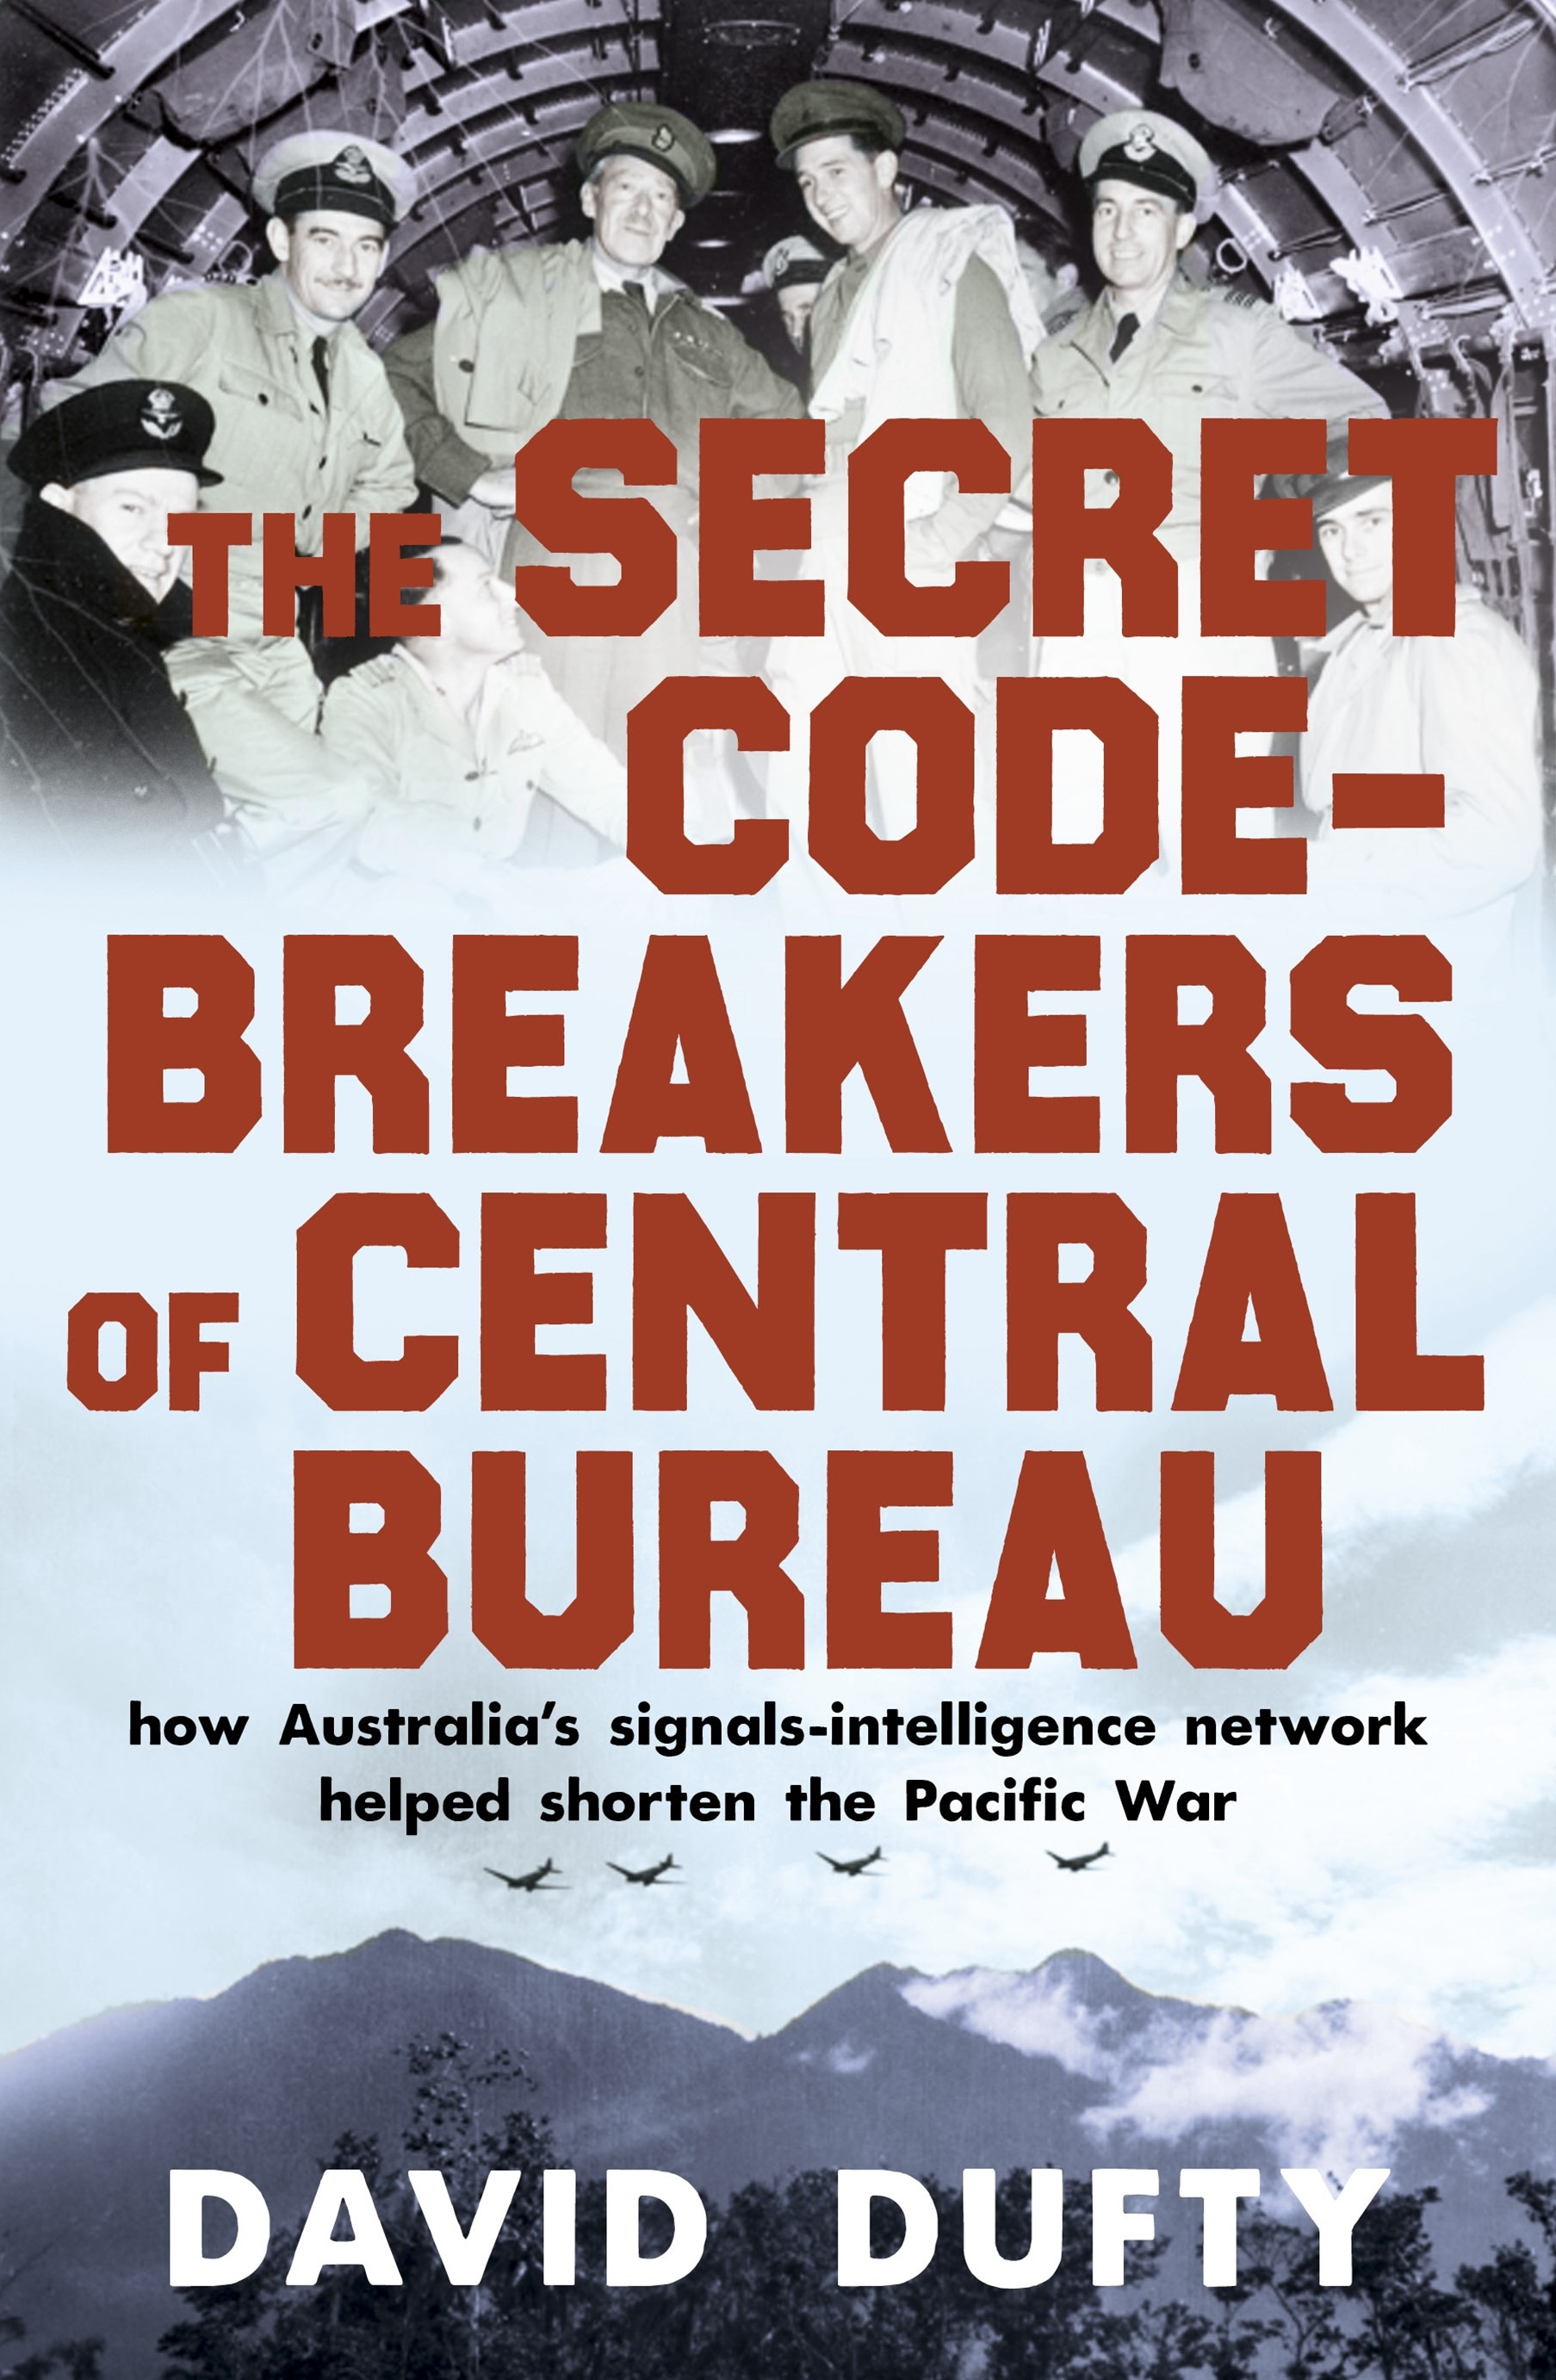 The Secret Code-Breakers of Central Bureau: how Australia's signals-intelligence network shortened